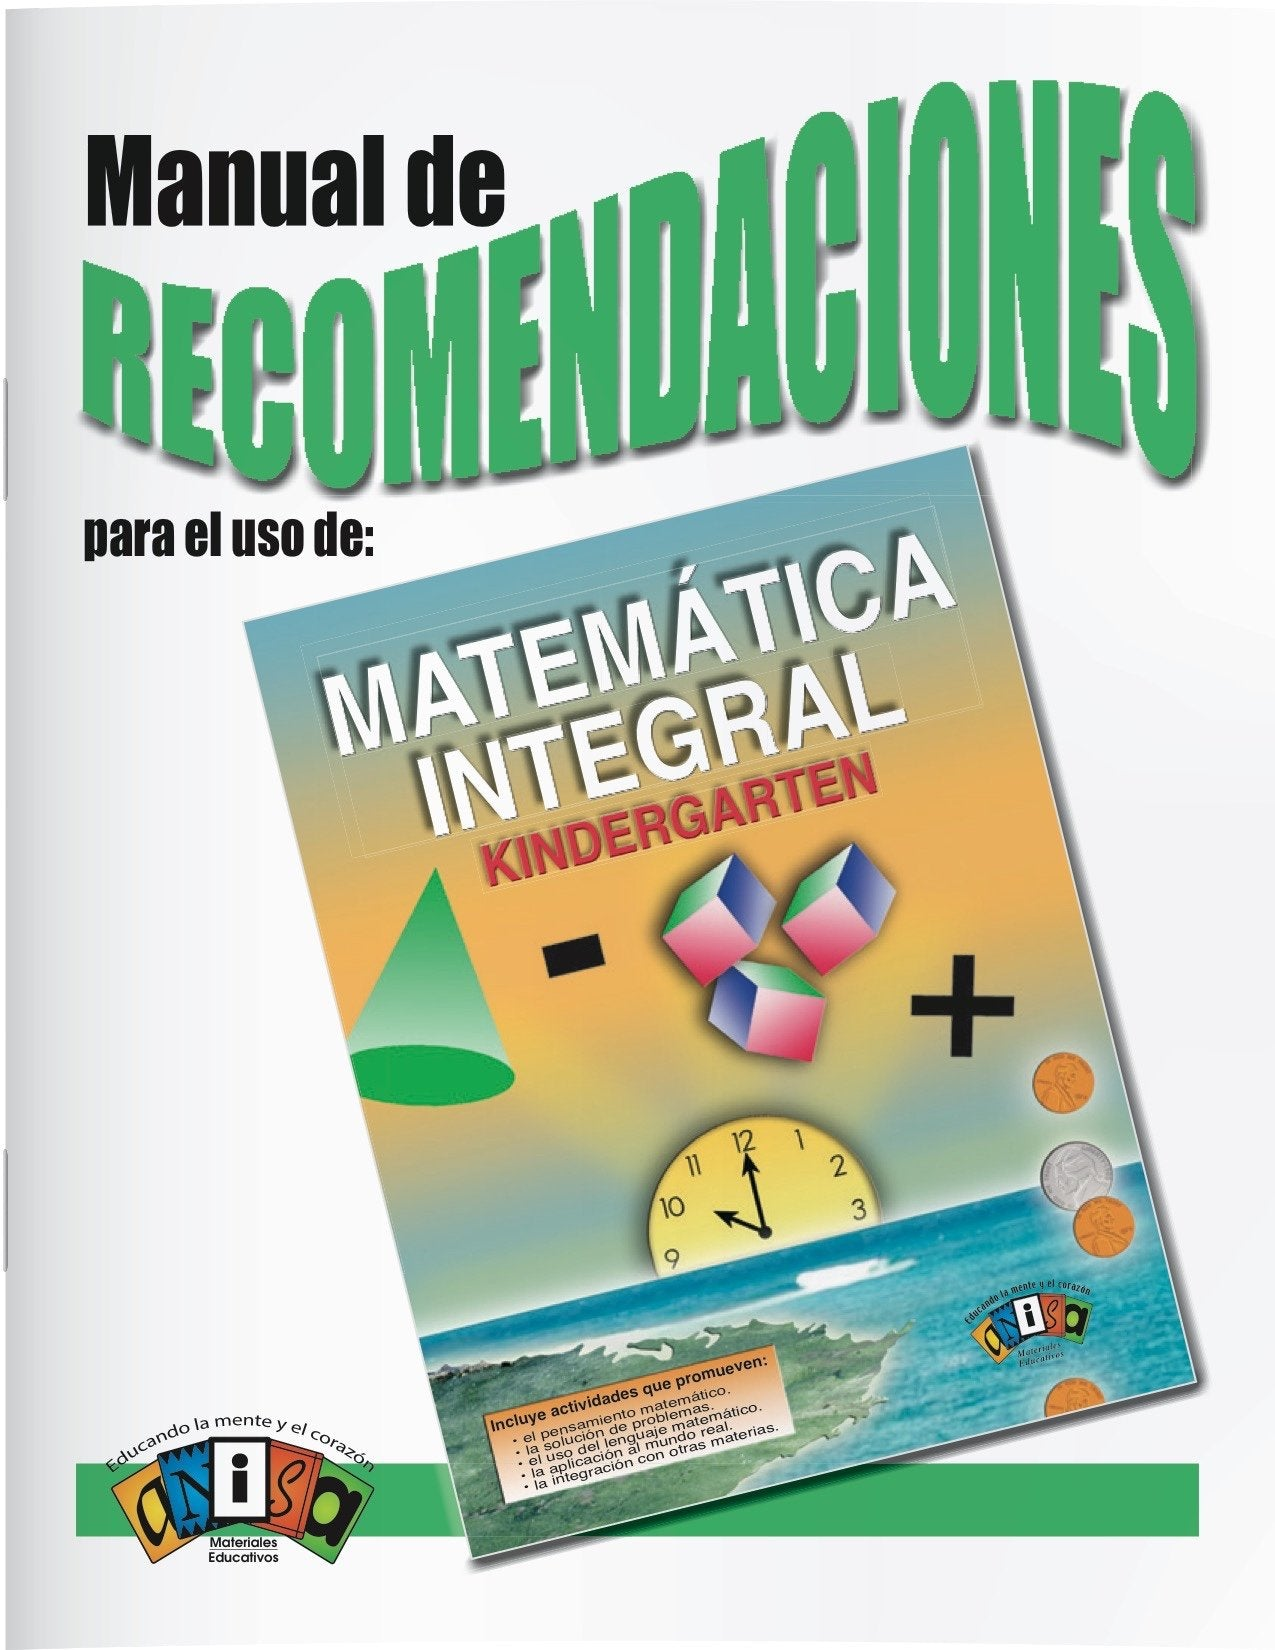 AM-L000 Matemática Integral - Kinder (Manual de recomendacione